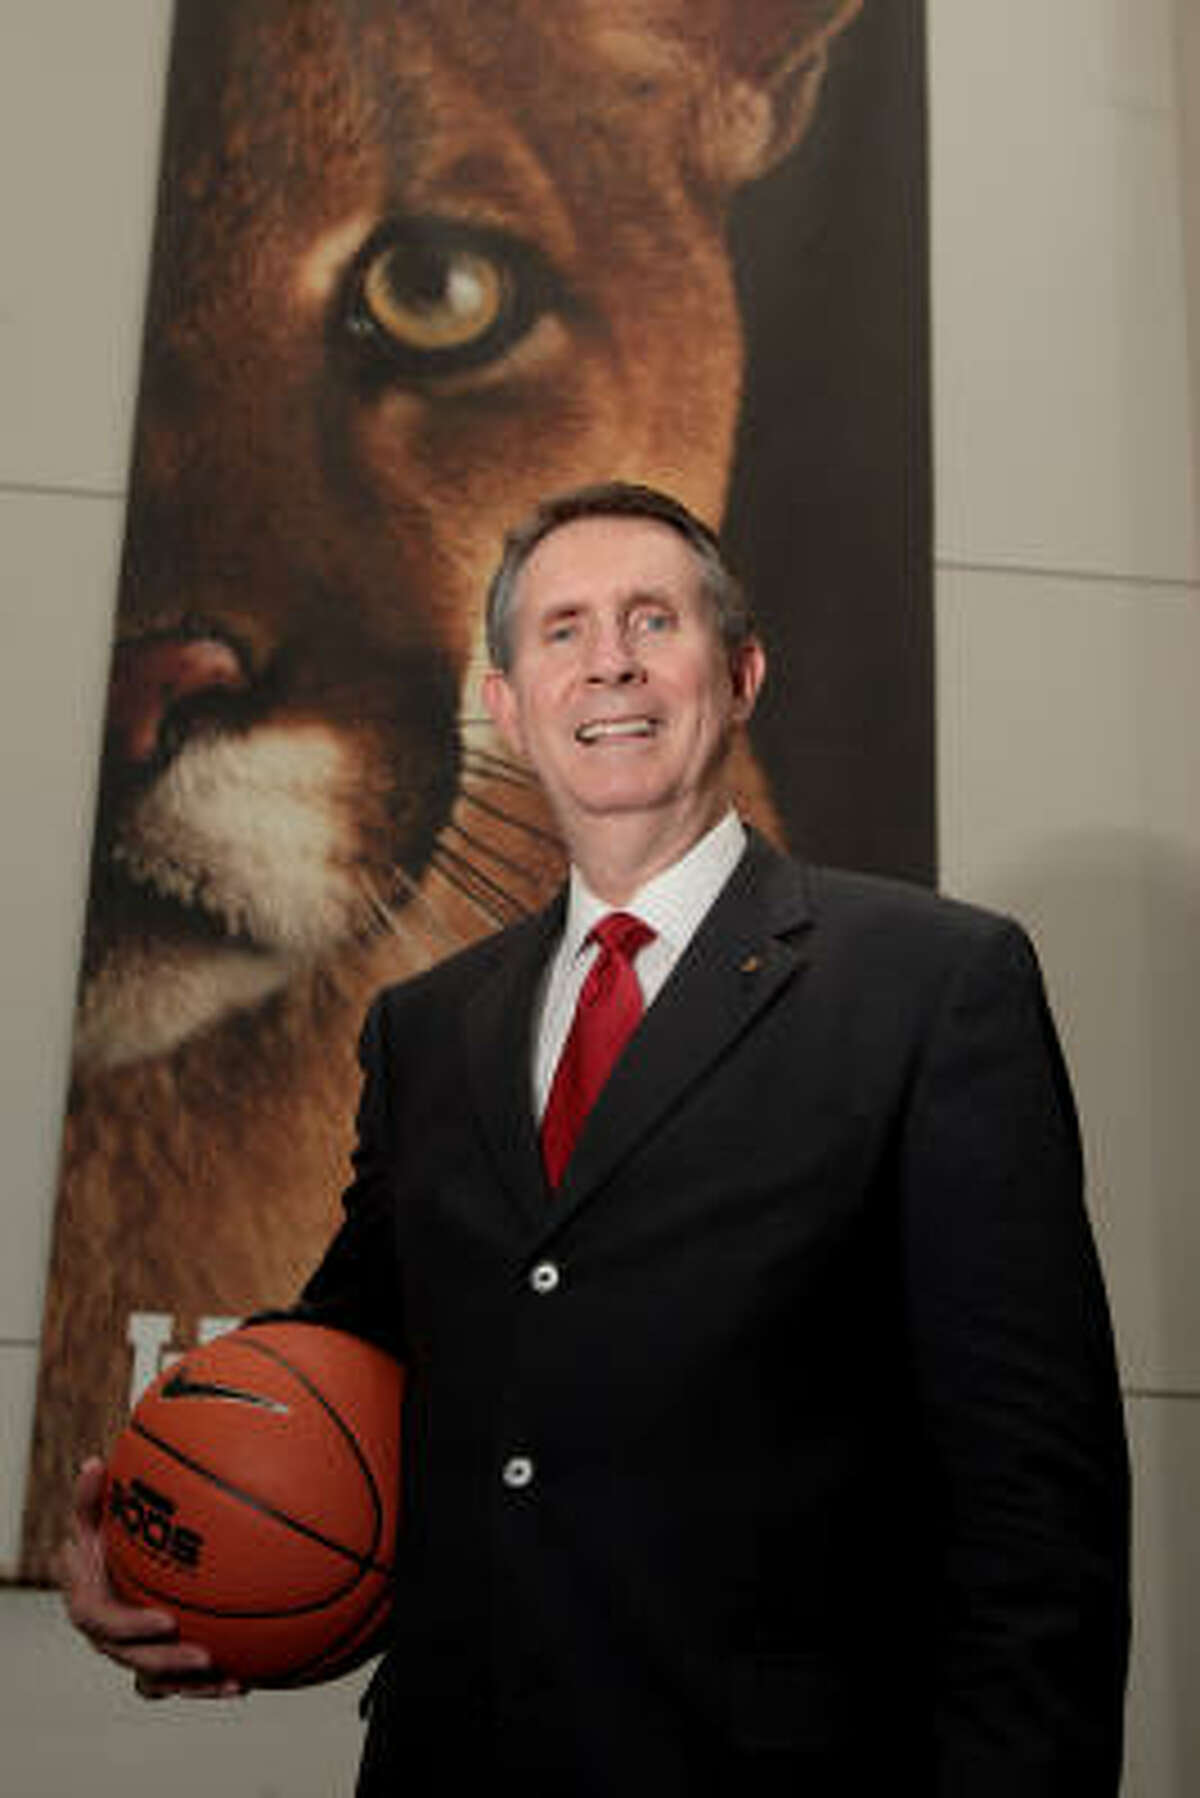 James Dickey becomes the eighth head men's basketball coach in UH history.